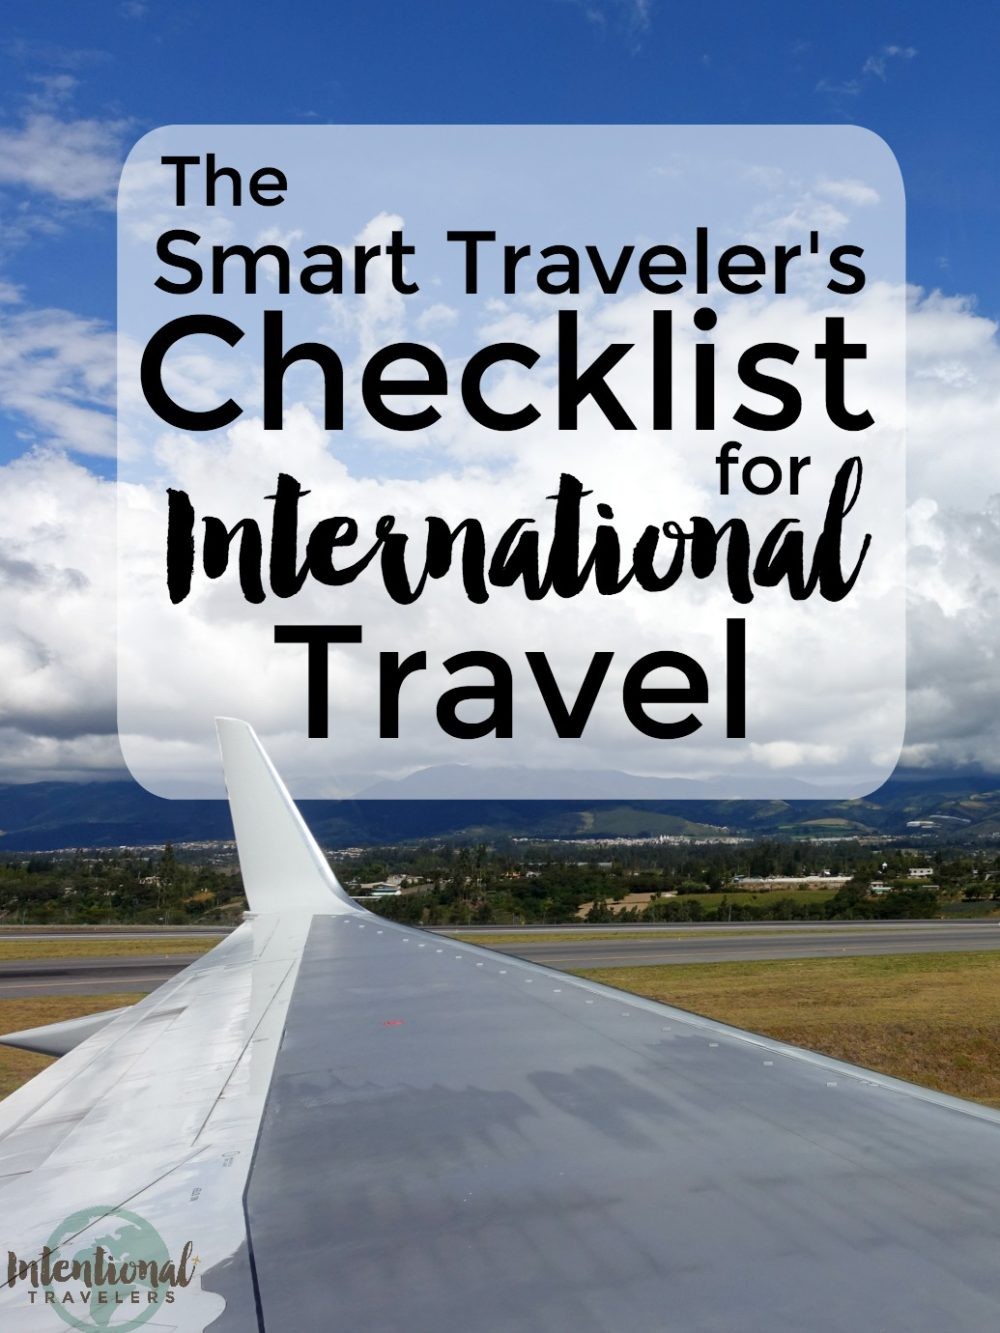 Checklist-international-travel